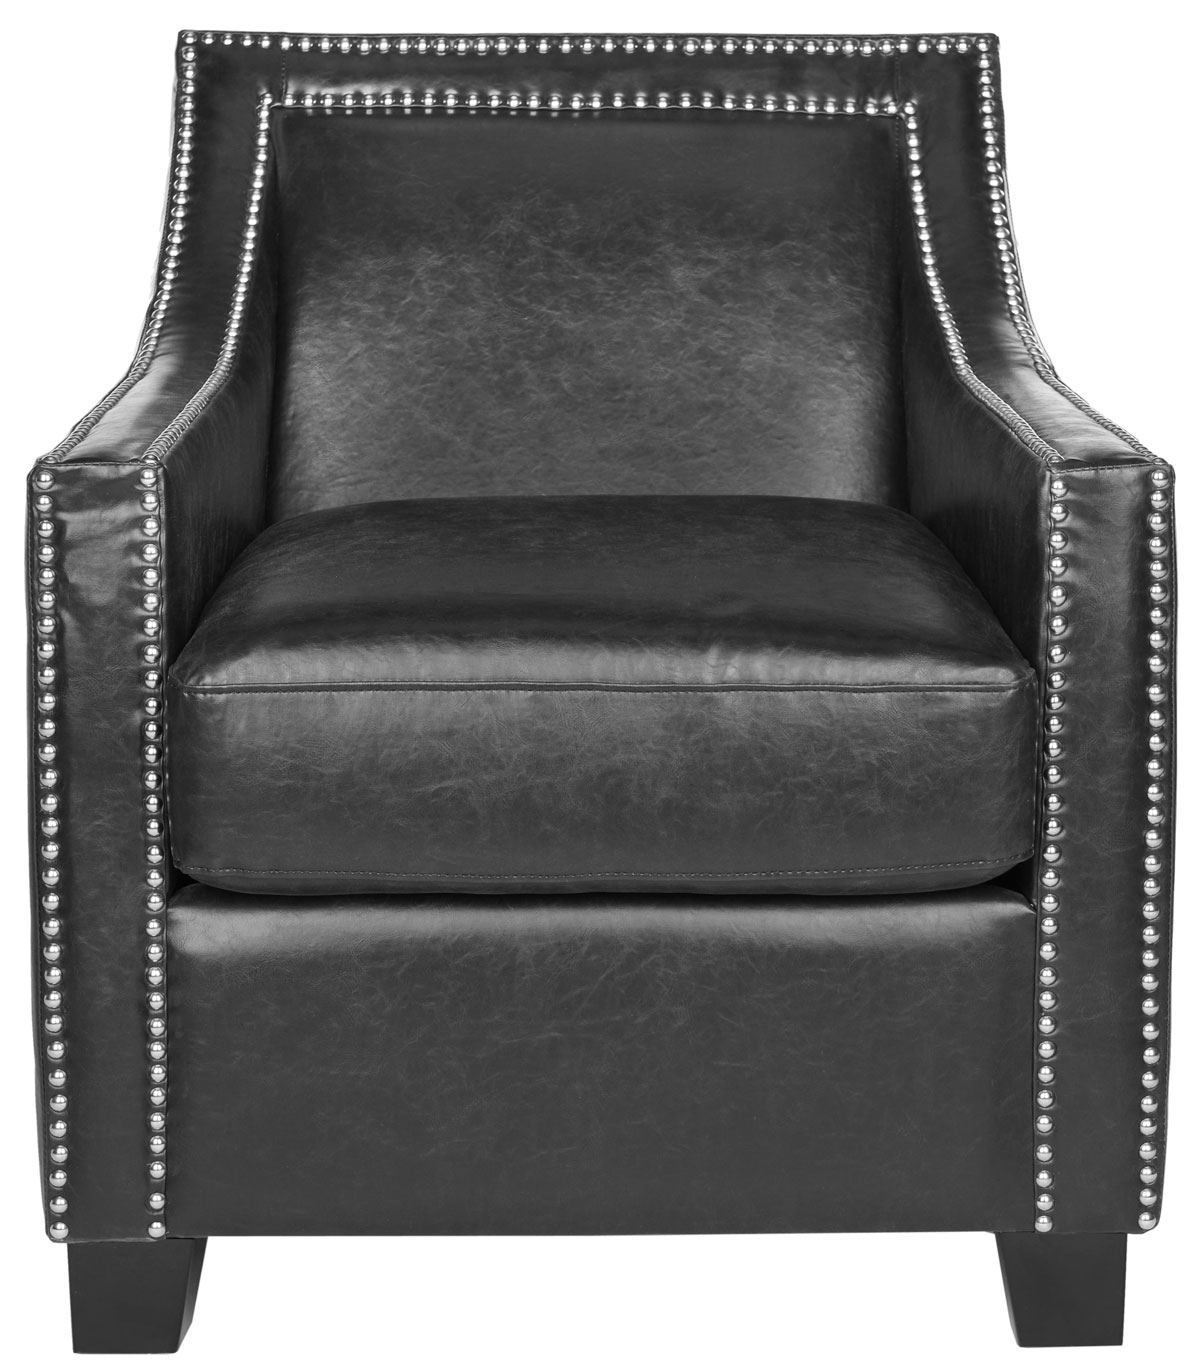 Mcr4730a Accent Chairs Furniture By Safavieh